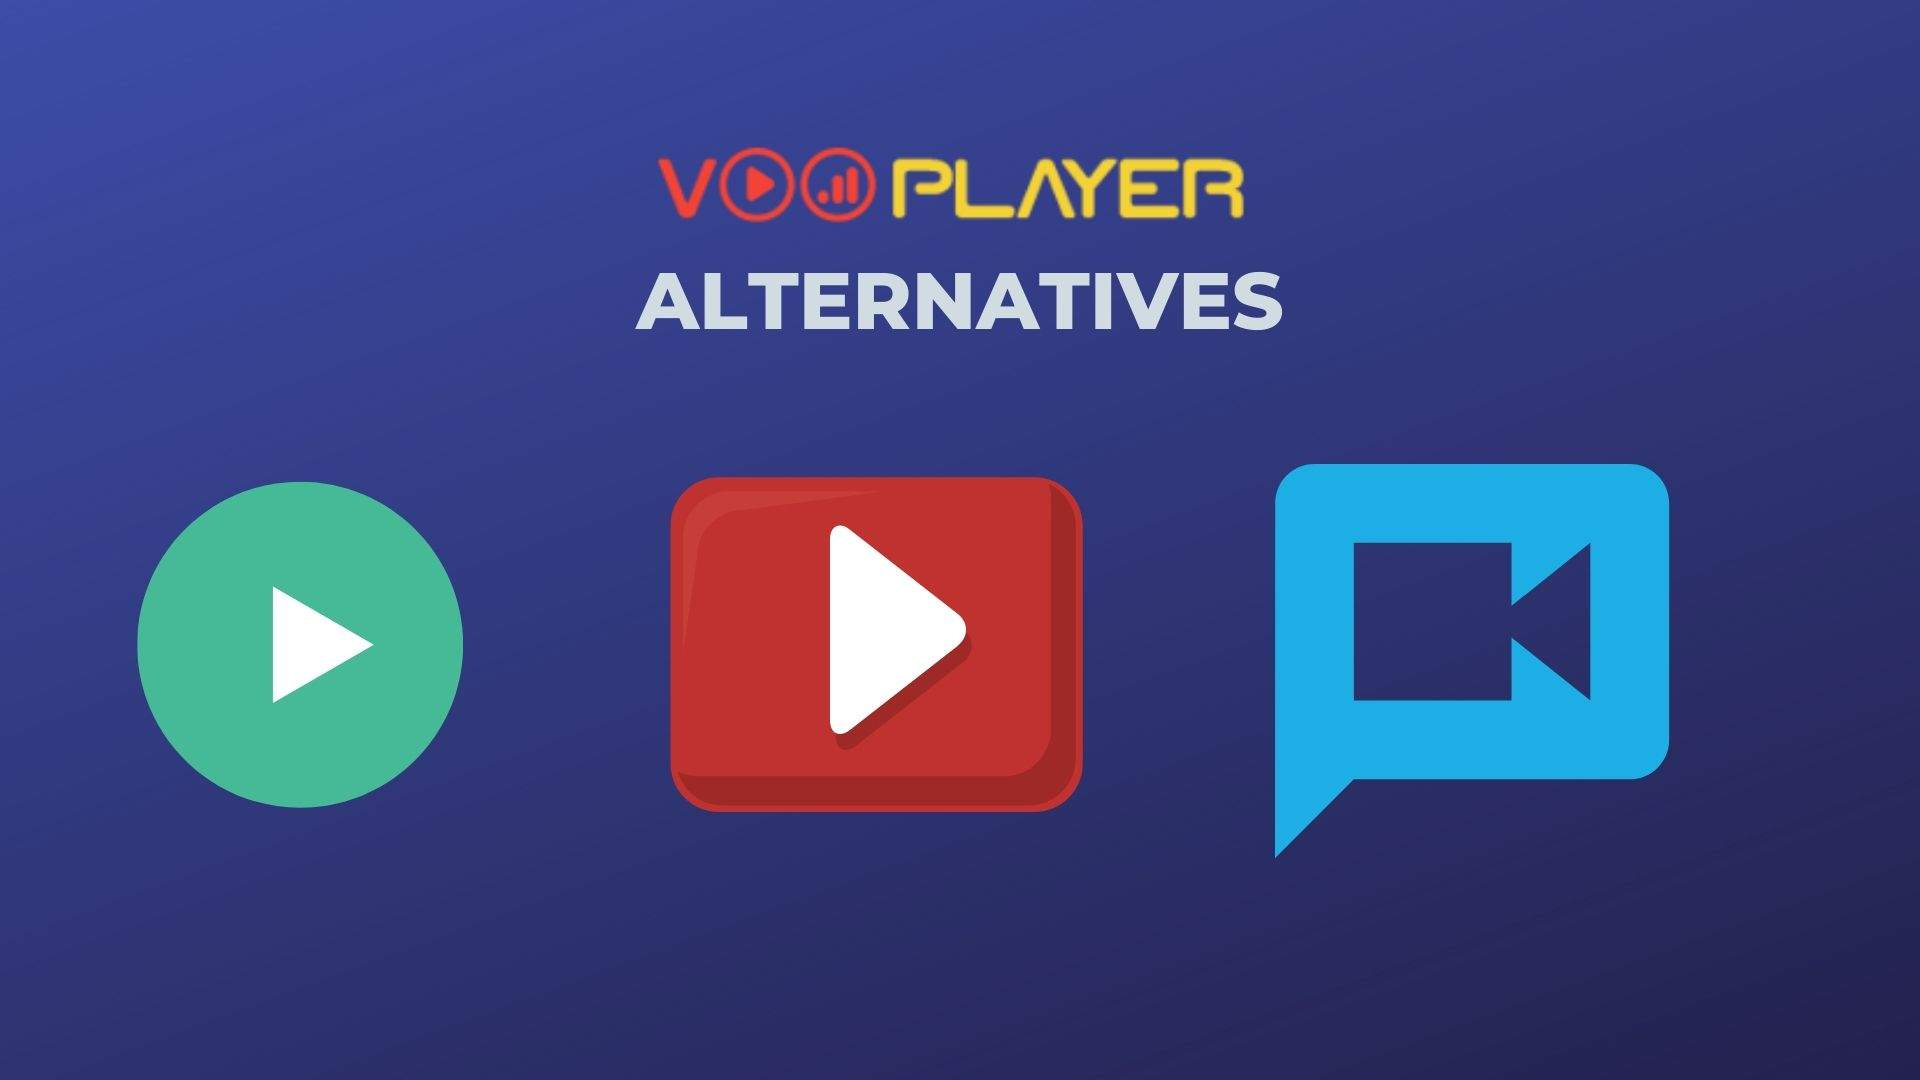 vooplayer-alternatives-for-video-marketing